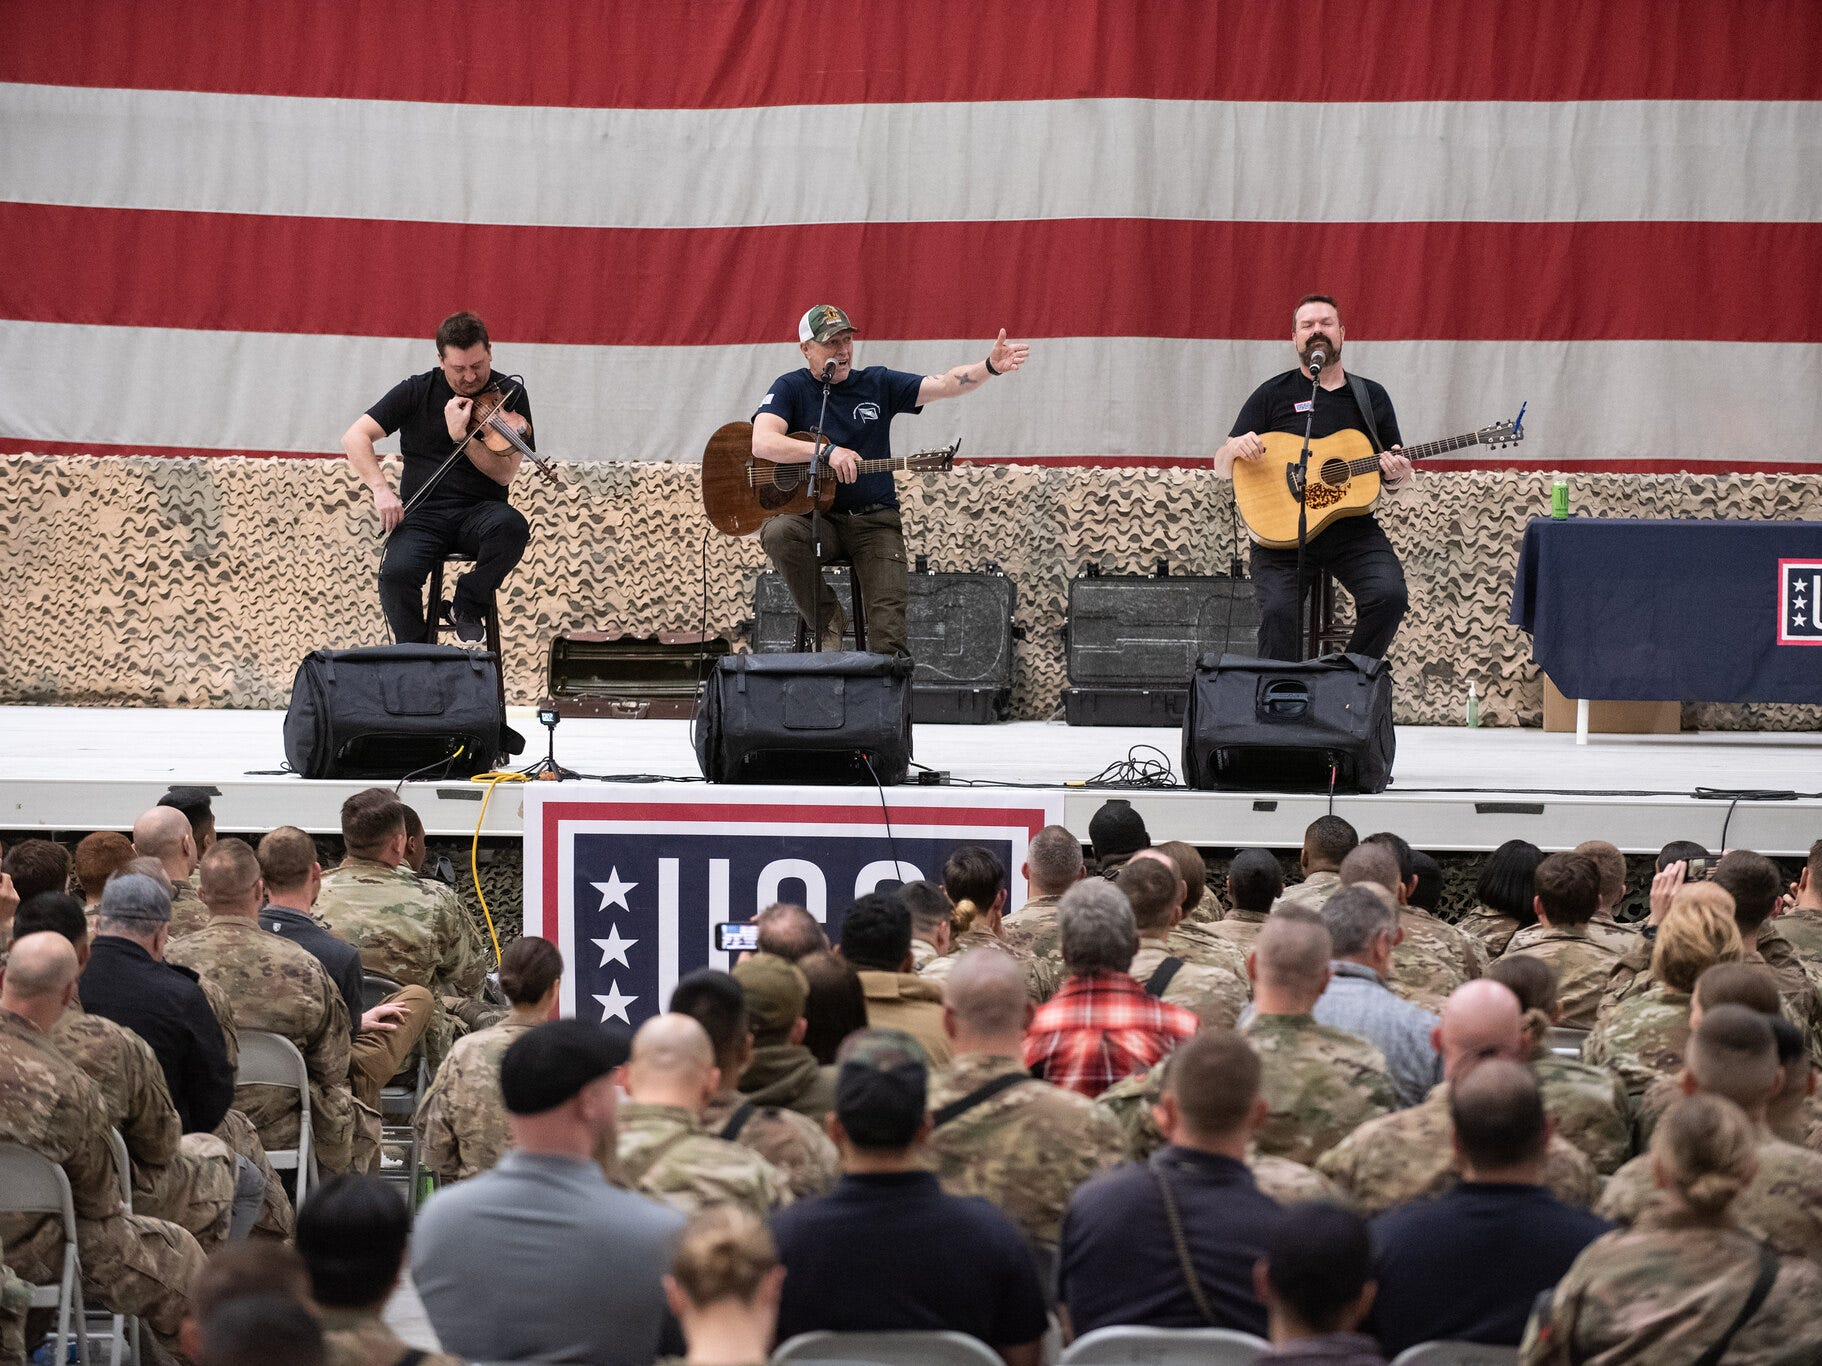 Entertainers and athletes take questions and interact with the audience during a USO Show at Bagram Airfield, Afghanistan; the second stop on the annual Vice Chairman's USO Tour, March 31, 2019. Country music artist Craig Morgan, middle, performs.